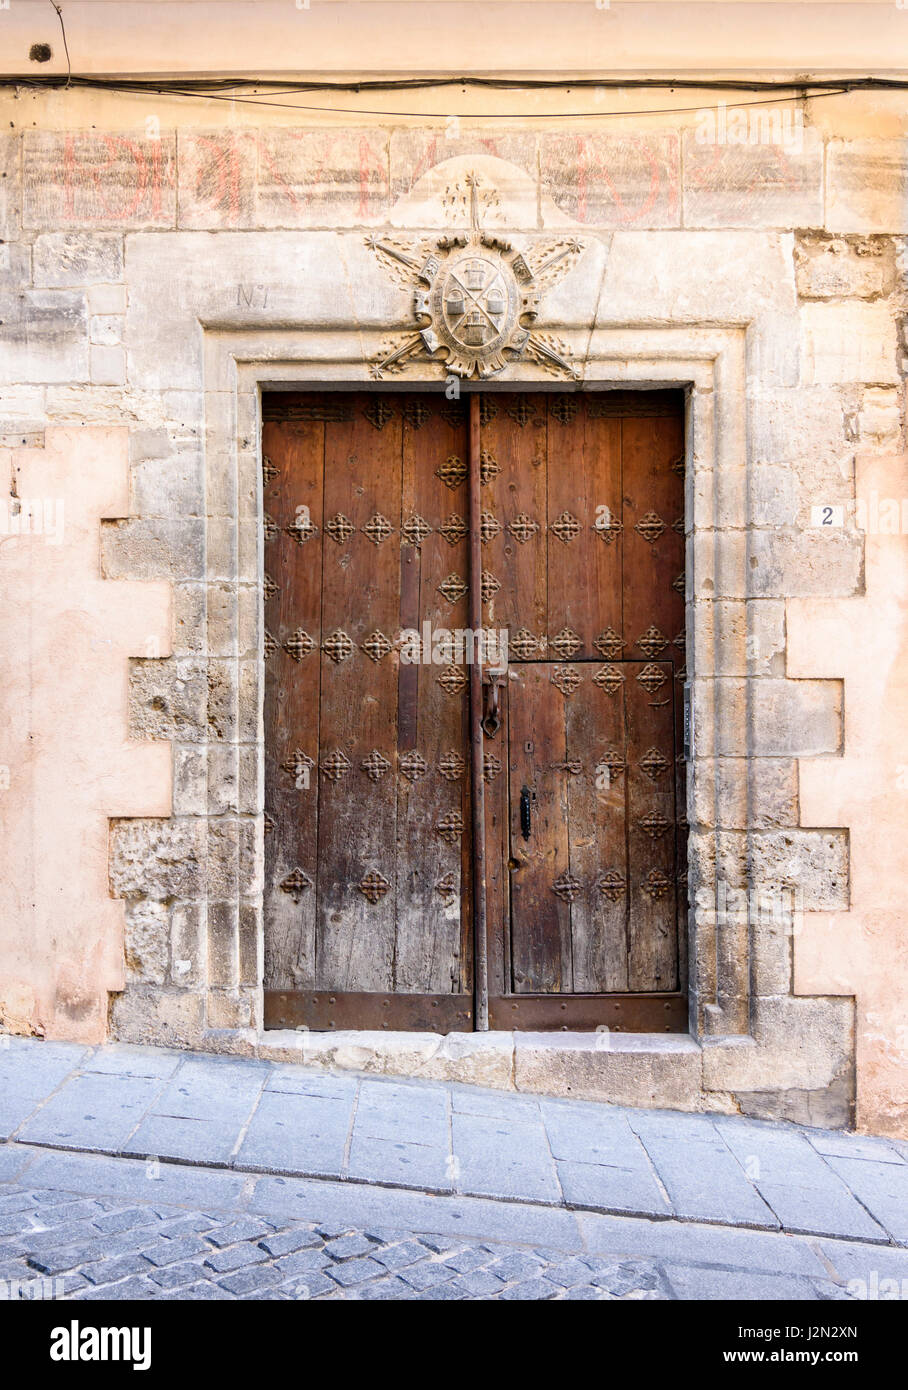 Old Wooden Double Doors Below A Coat Of Arms On A Historic Building In The  Old Medieval Town Of Cuenca, Castilla La Mancha, Spain